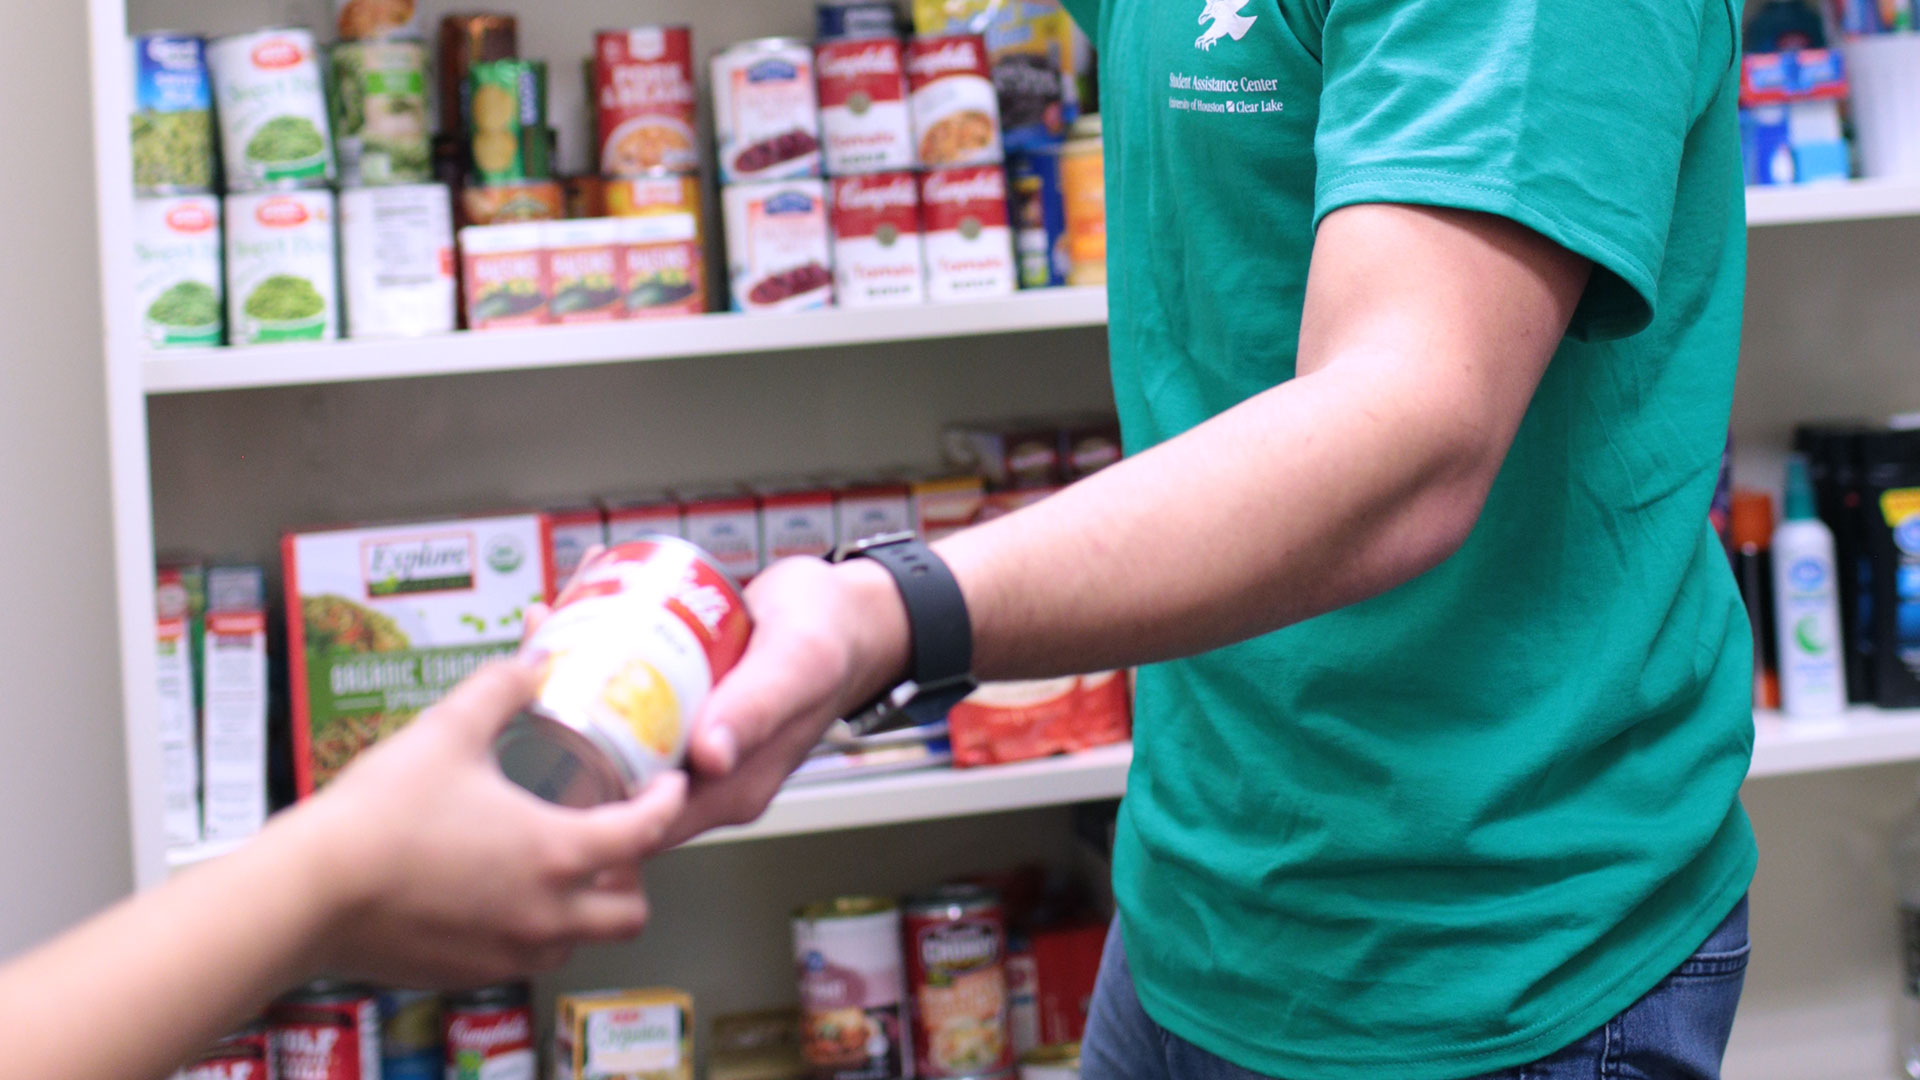 Cooler donations, grant funds allow Hawk Food Pantry to expand